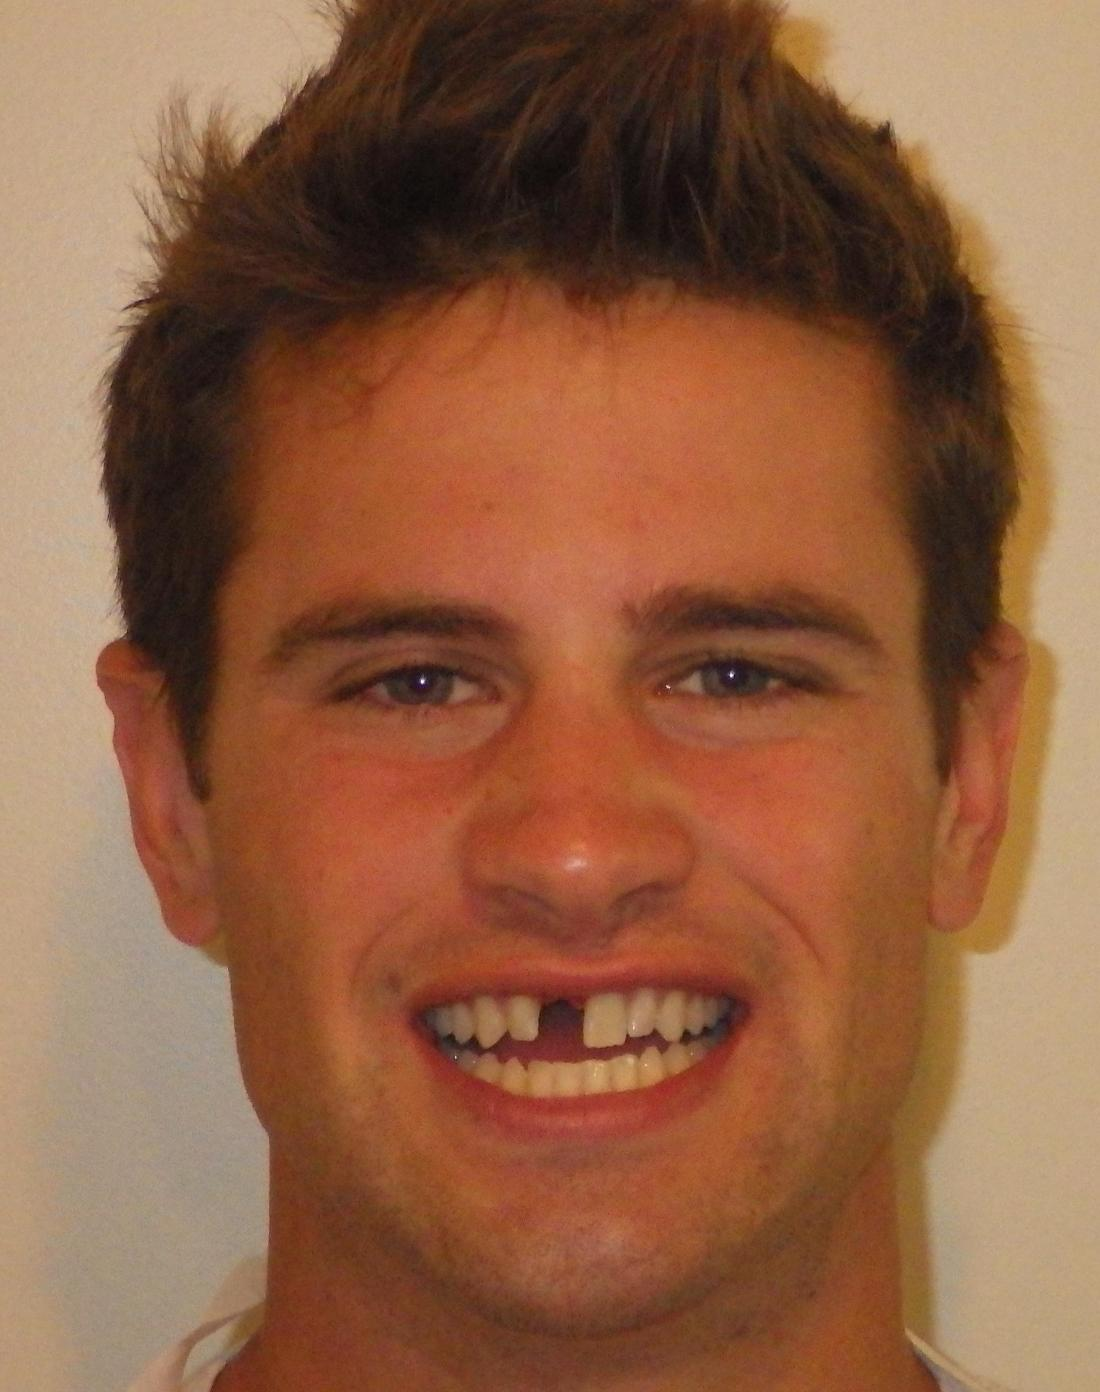 Missing front tooth | Dentist Duxbury MA